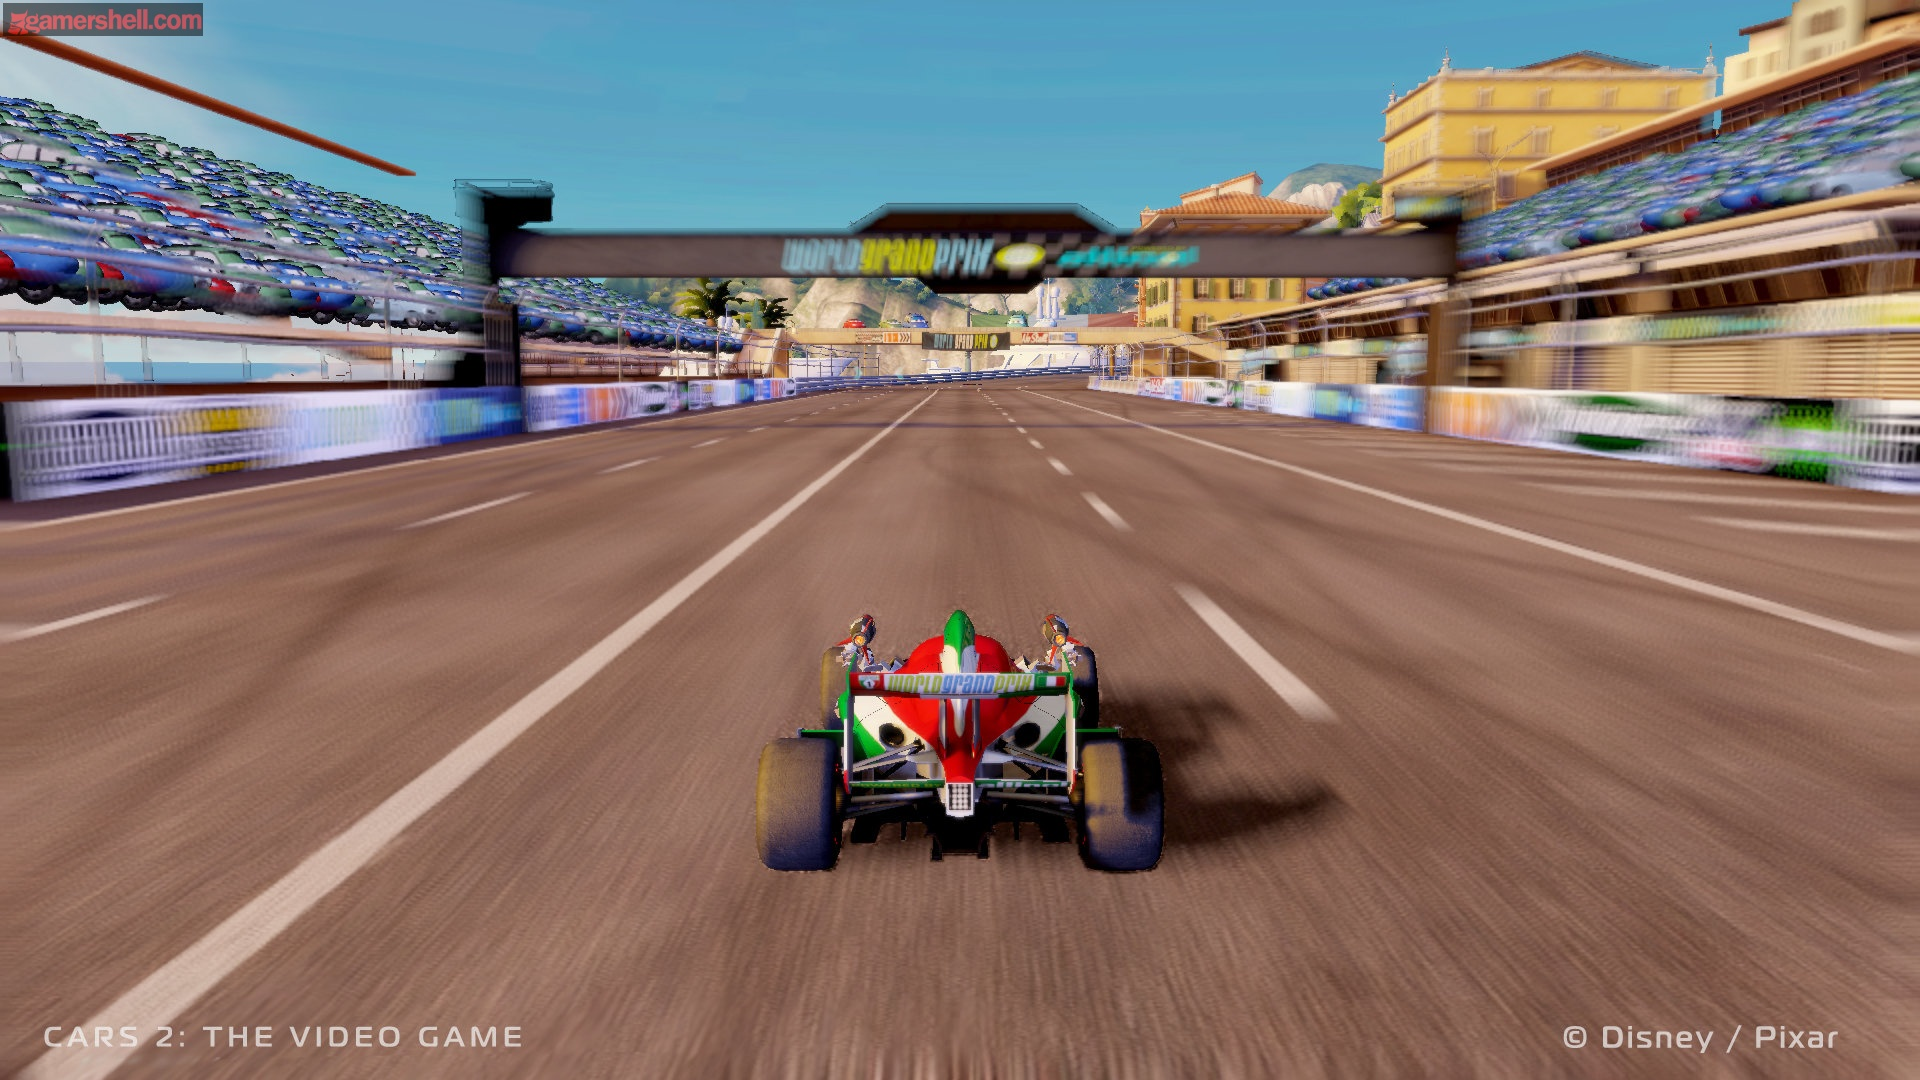 Cars 2 Video Game Screenshot 2